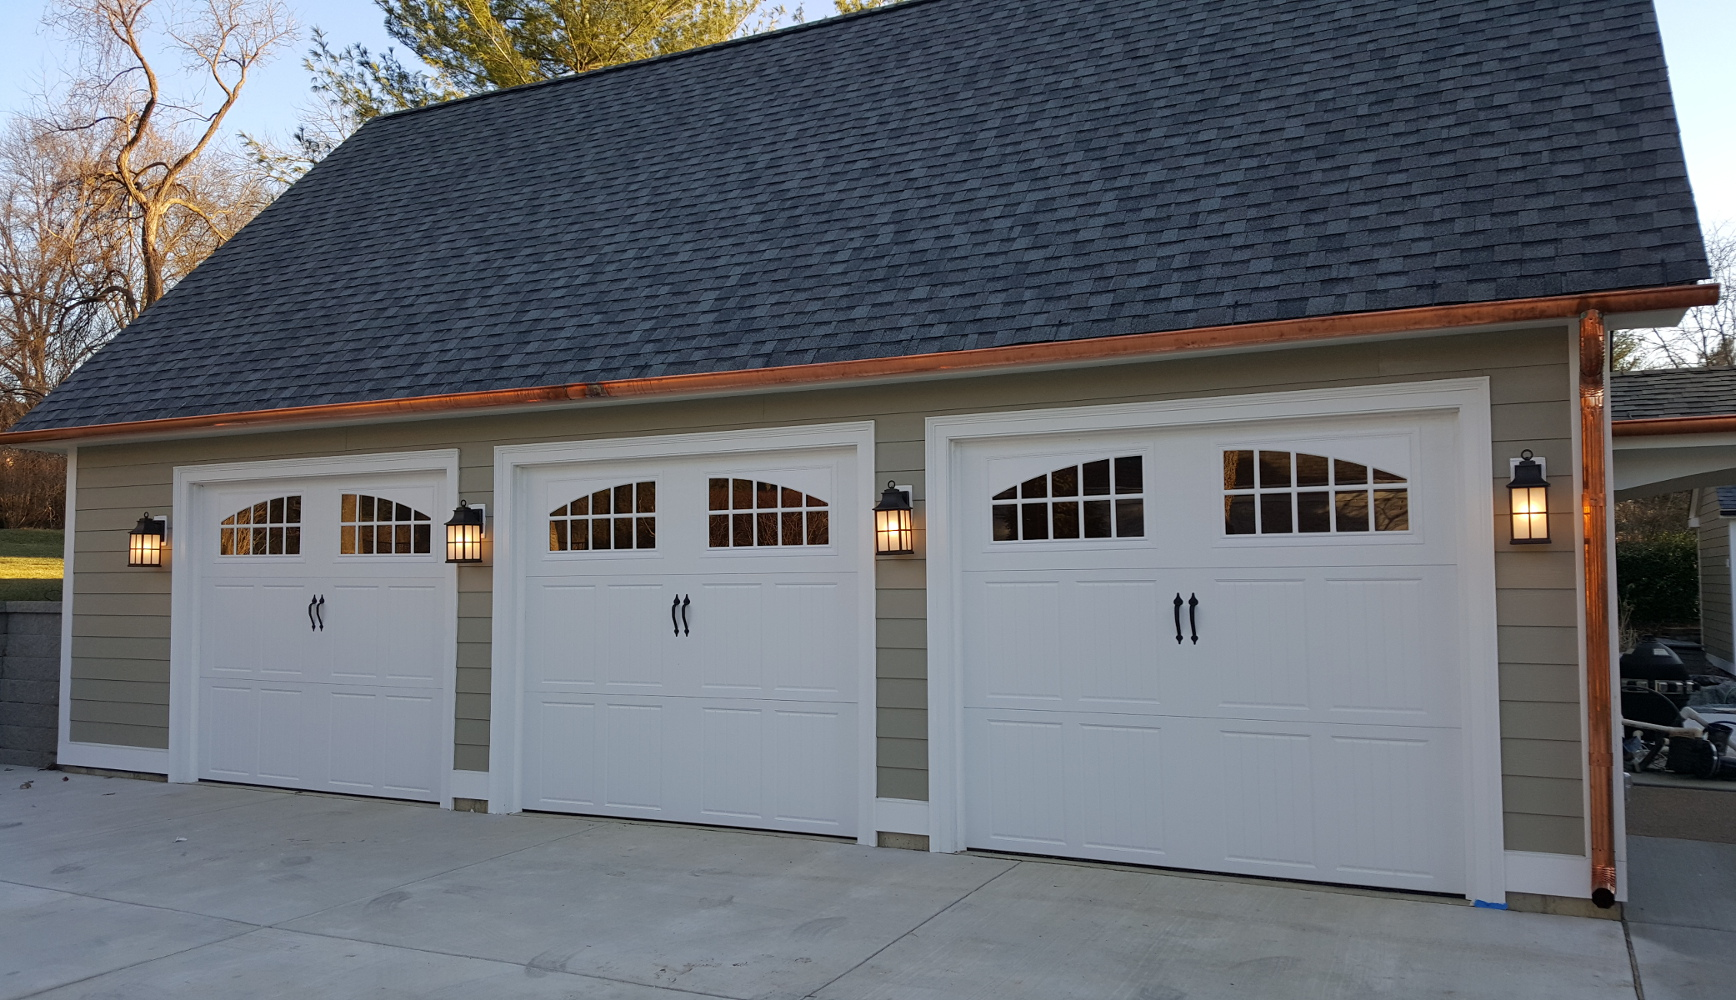 New garage doors new garage doors frontpagebackgroundscaled rubansaba